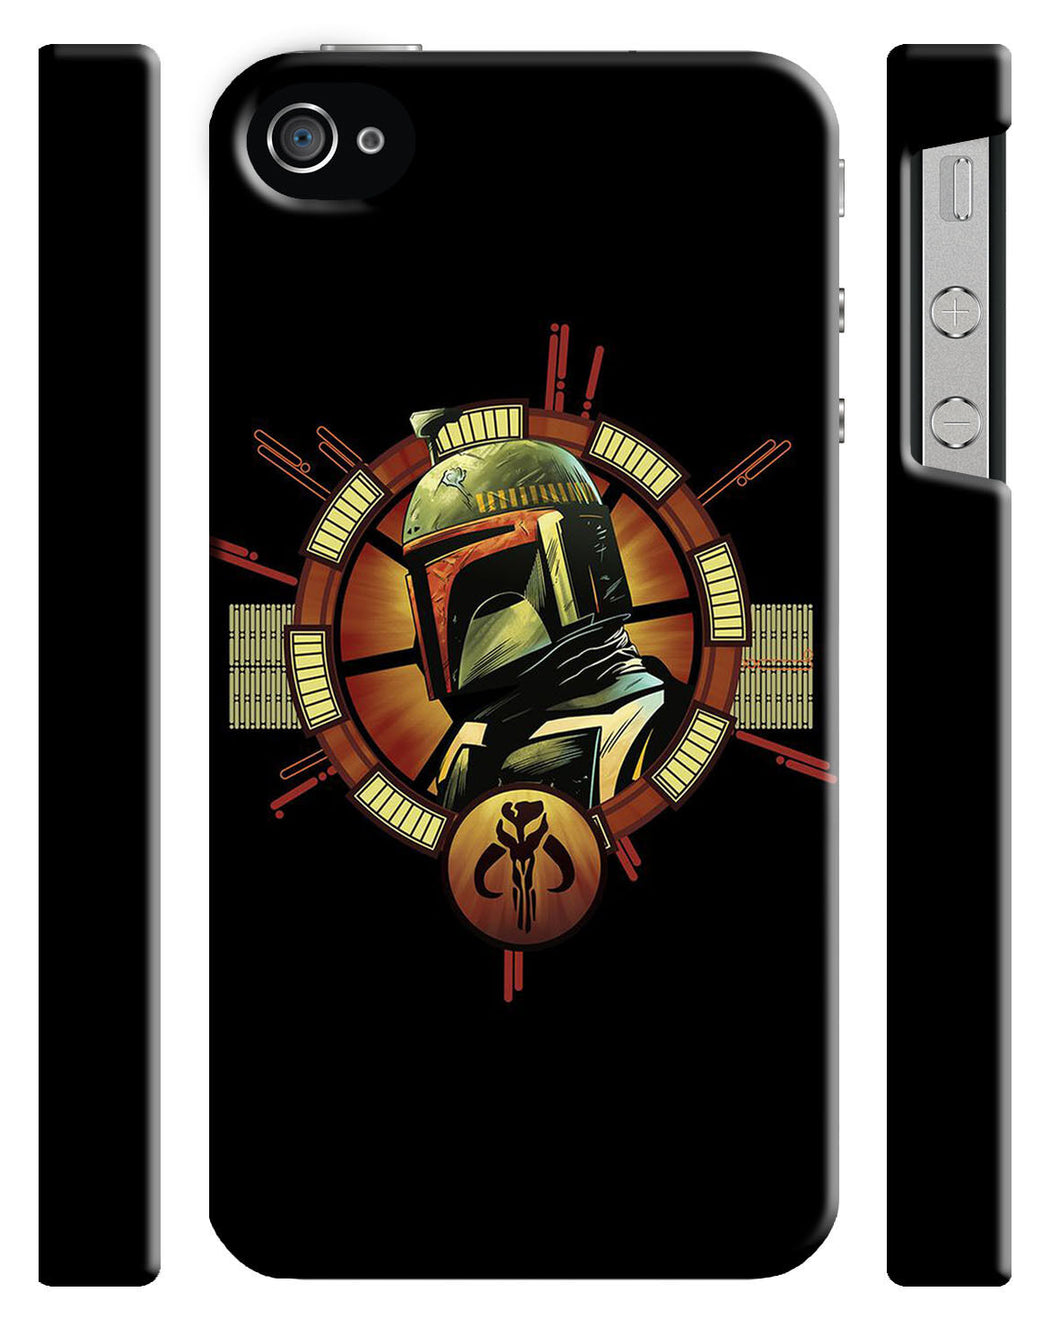 Star Wars 2015 Boba Fett Logo Iphone 4 4s 5 5s 5c 6 6S + Plus Case Cover 130